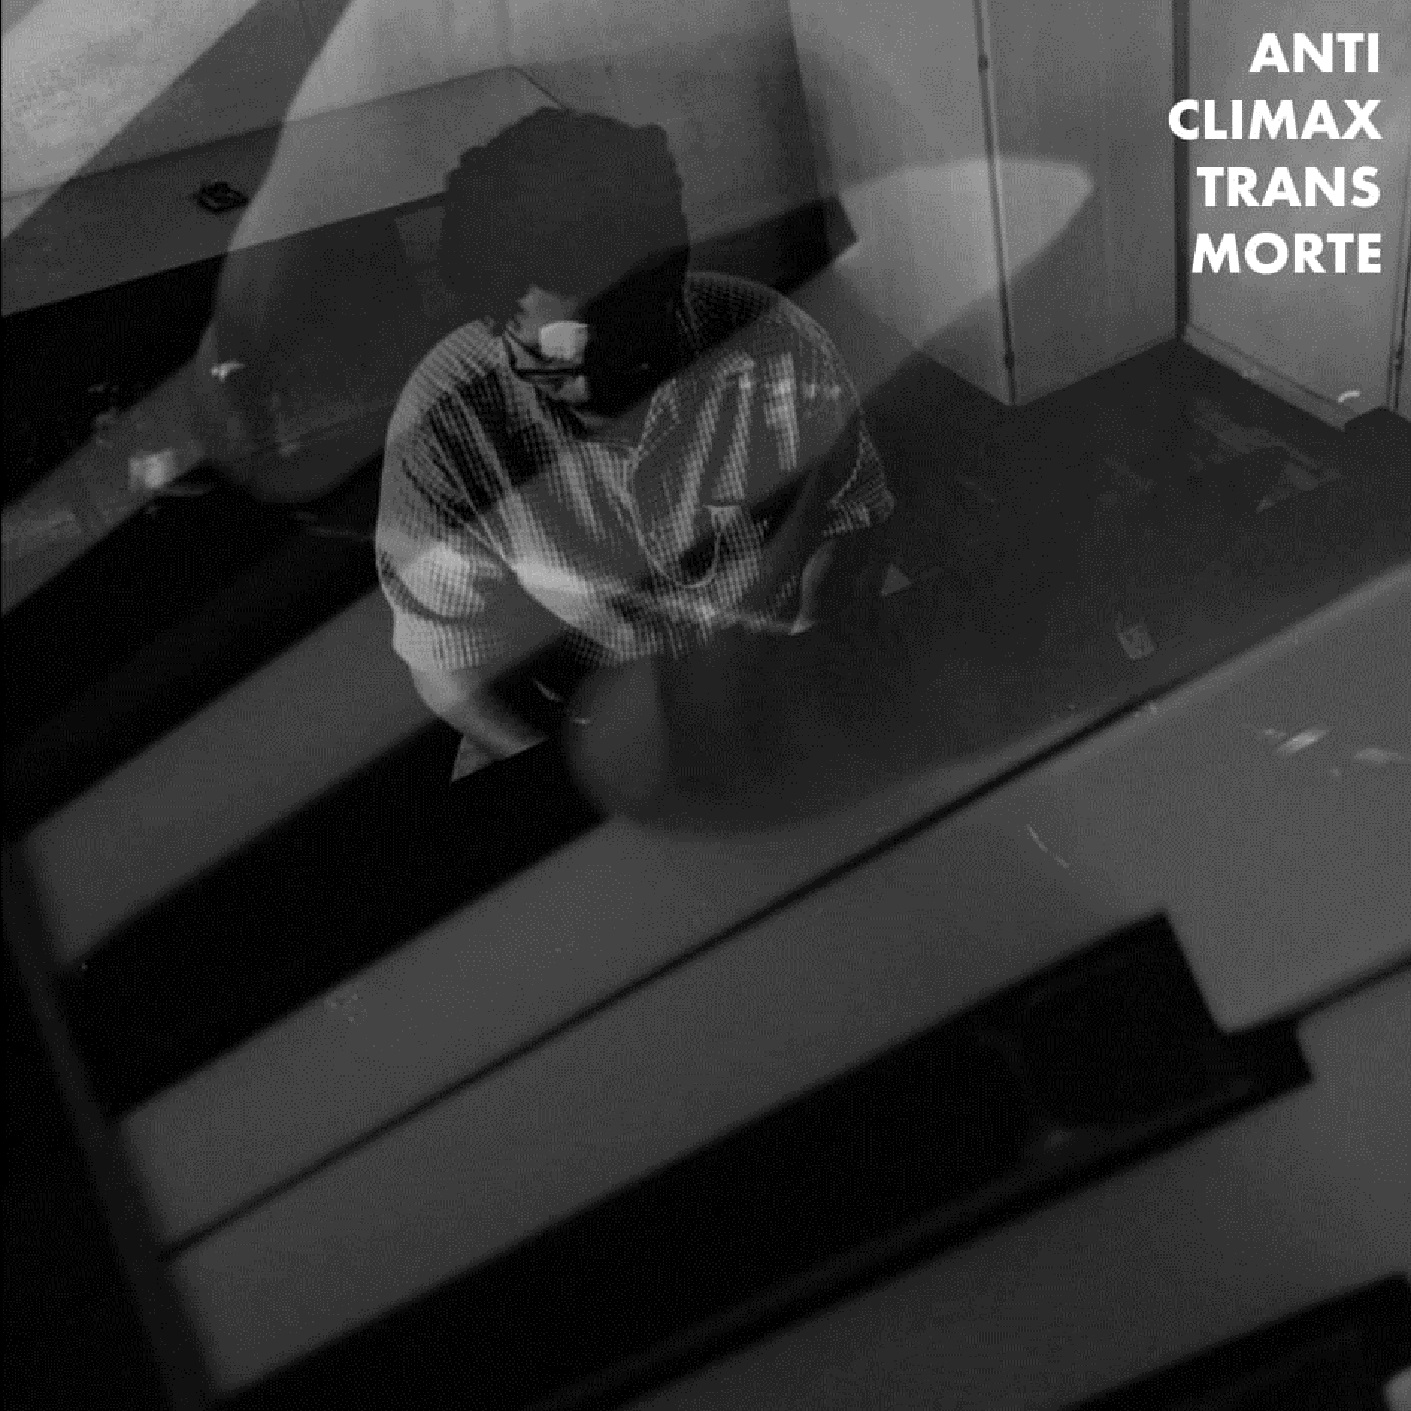 MSRCD085 - George Christian - AntiClimaxTransMorte